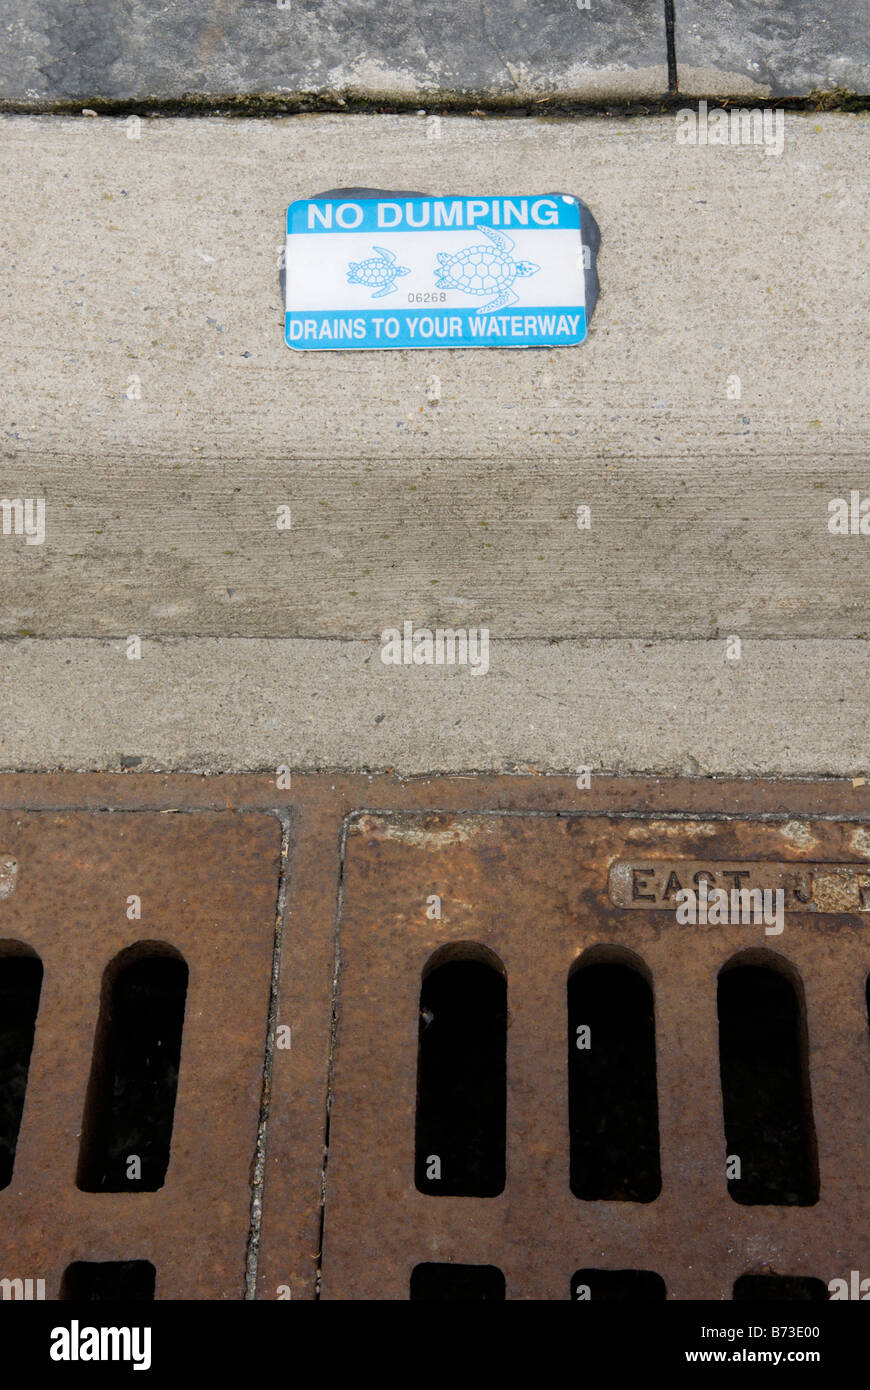 Storm drain with decal warning against pollution dumping - Stock Image